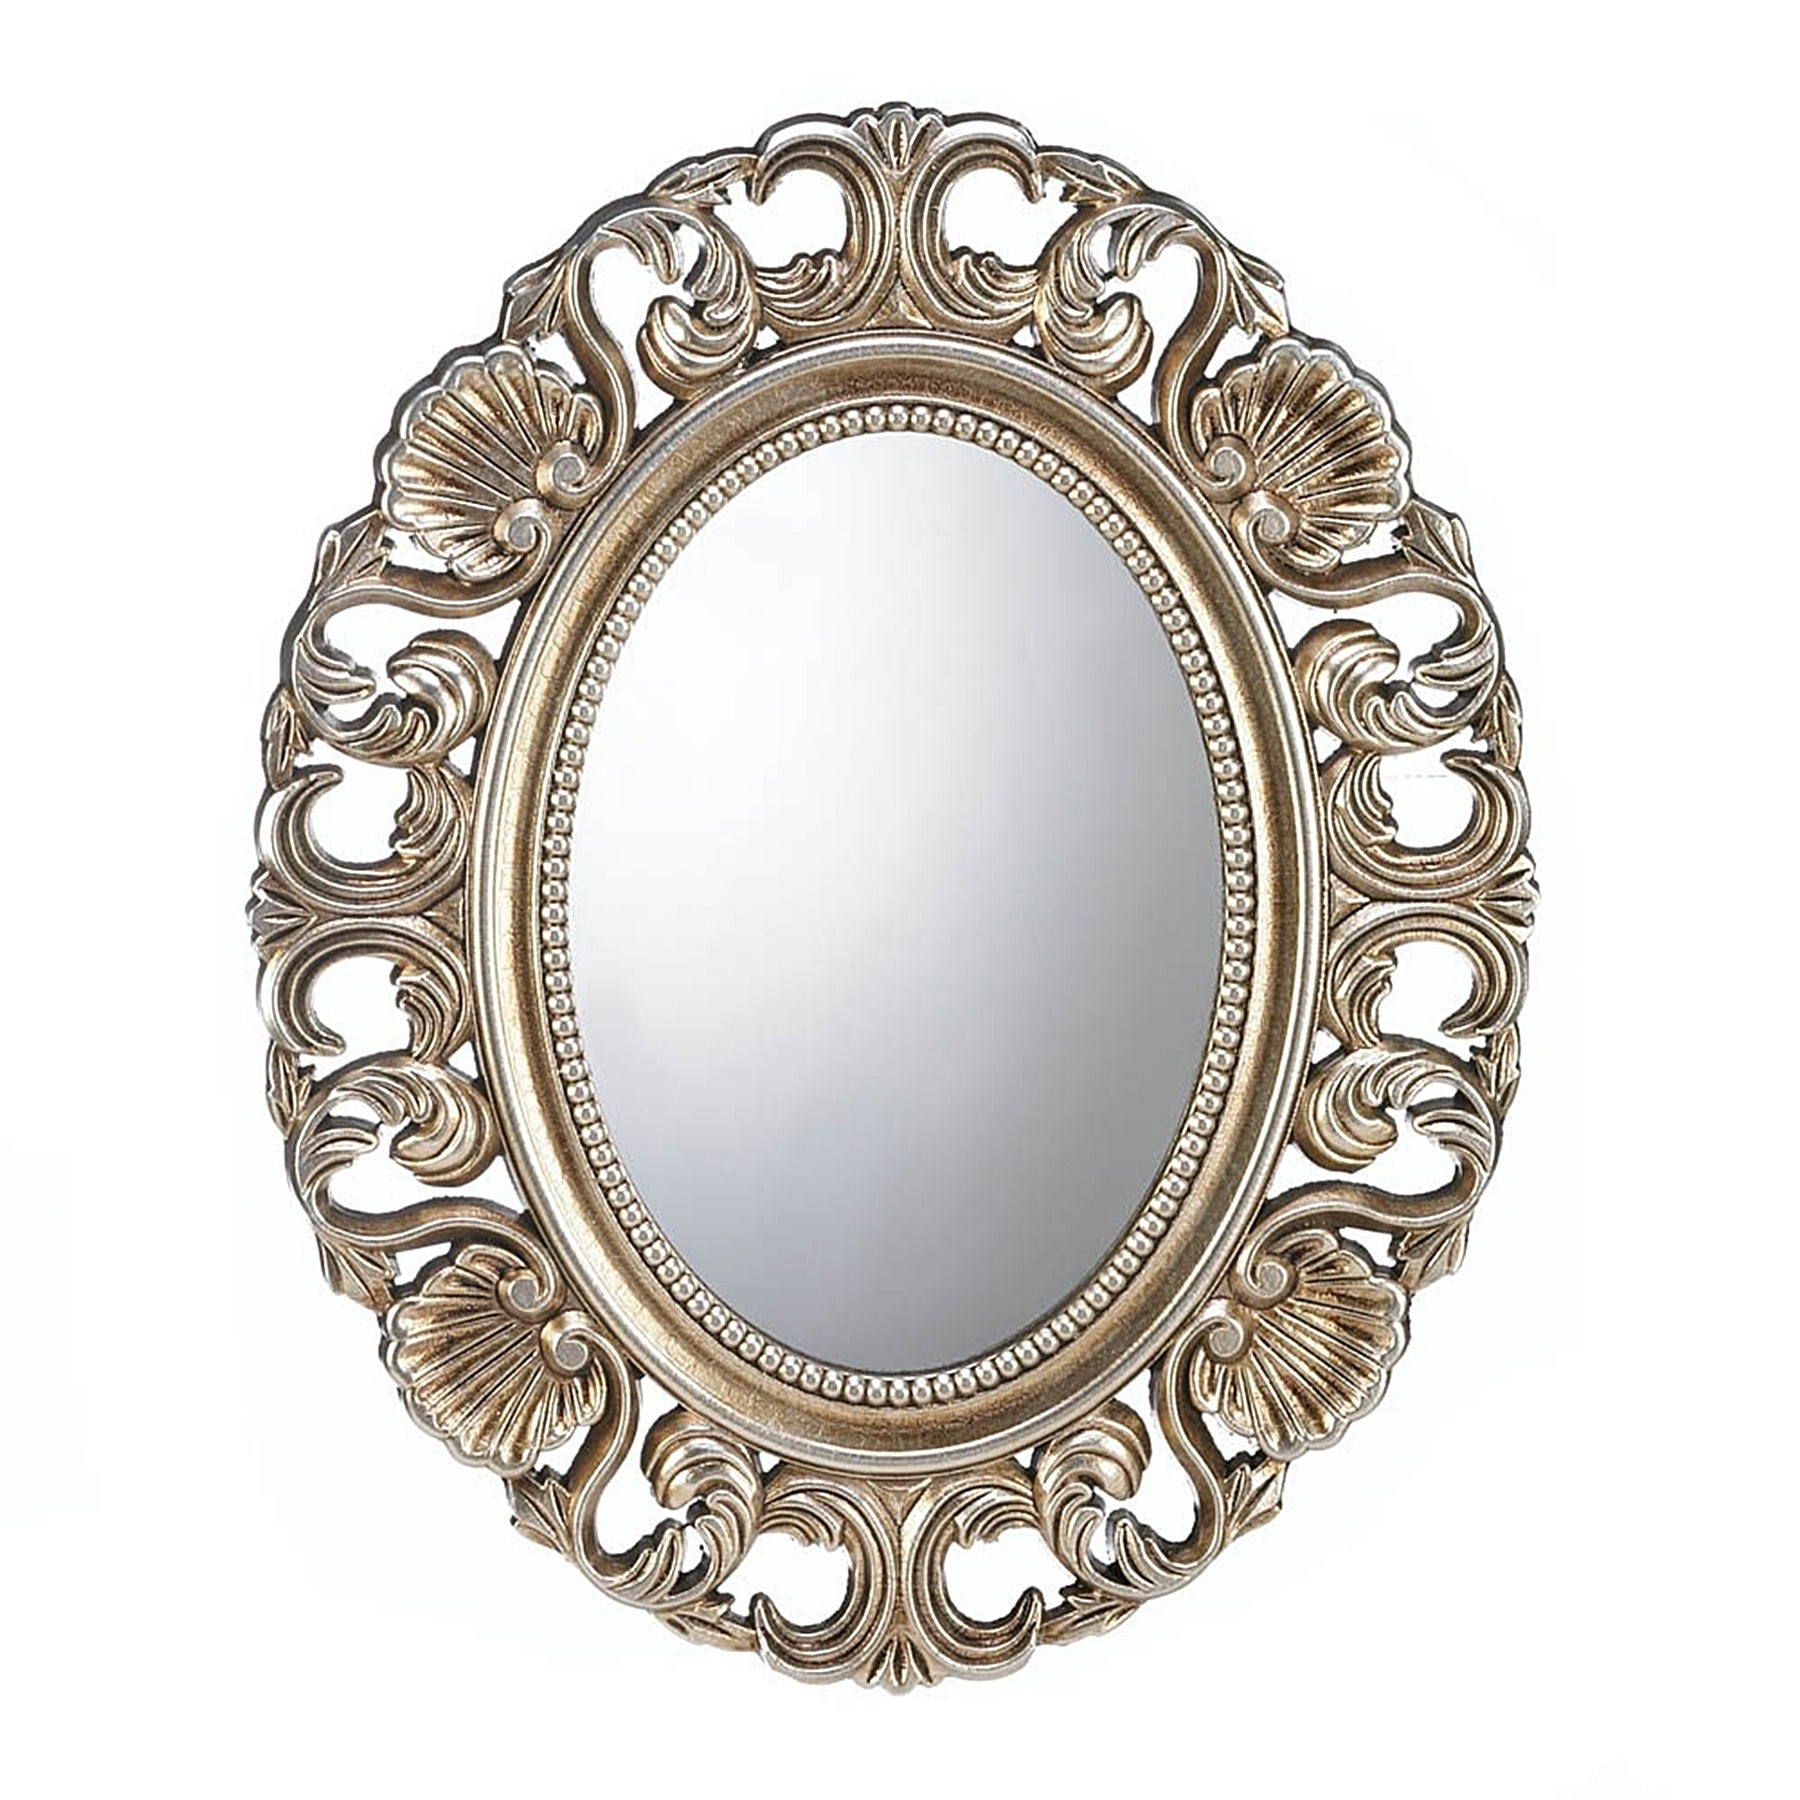 Most Recent Antique Oval Wall Mirrors With Regard To Antique Style Golden Oval Wall Mirror (View 11 of 20)